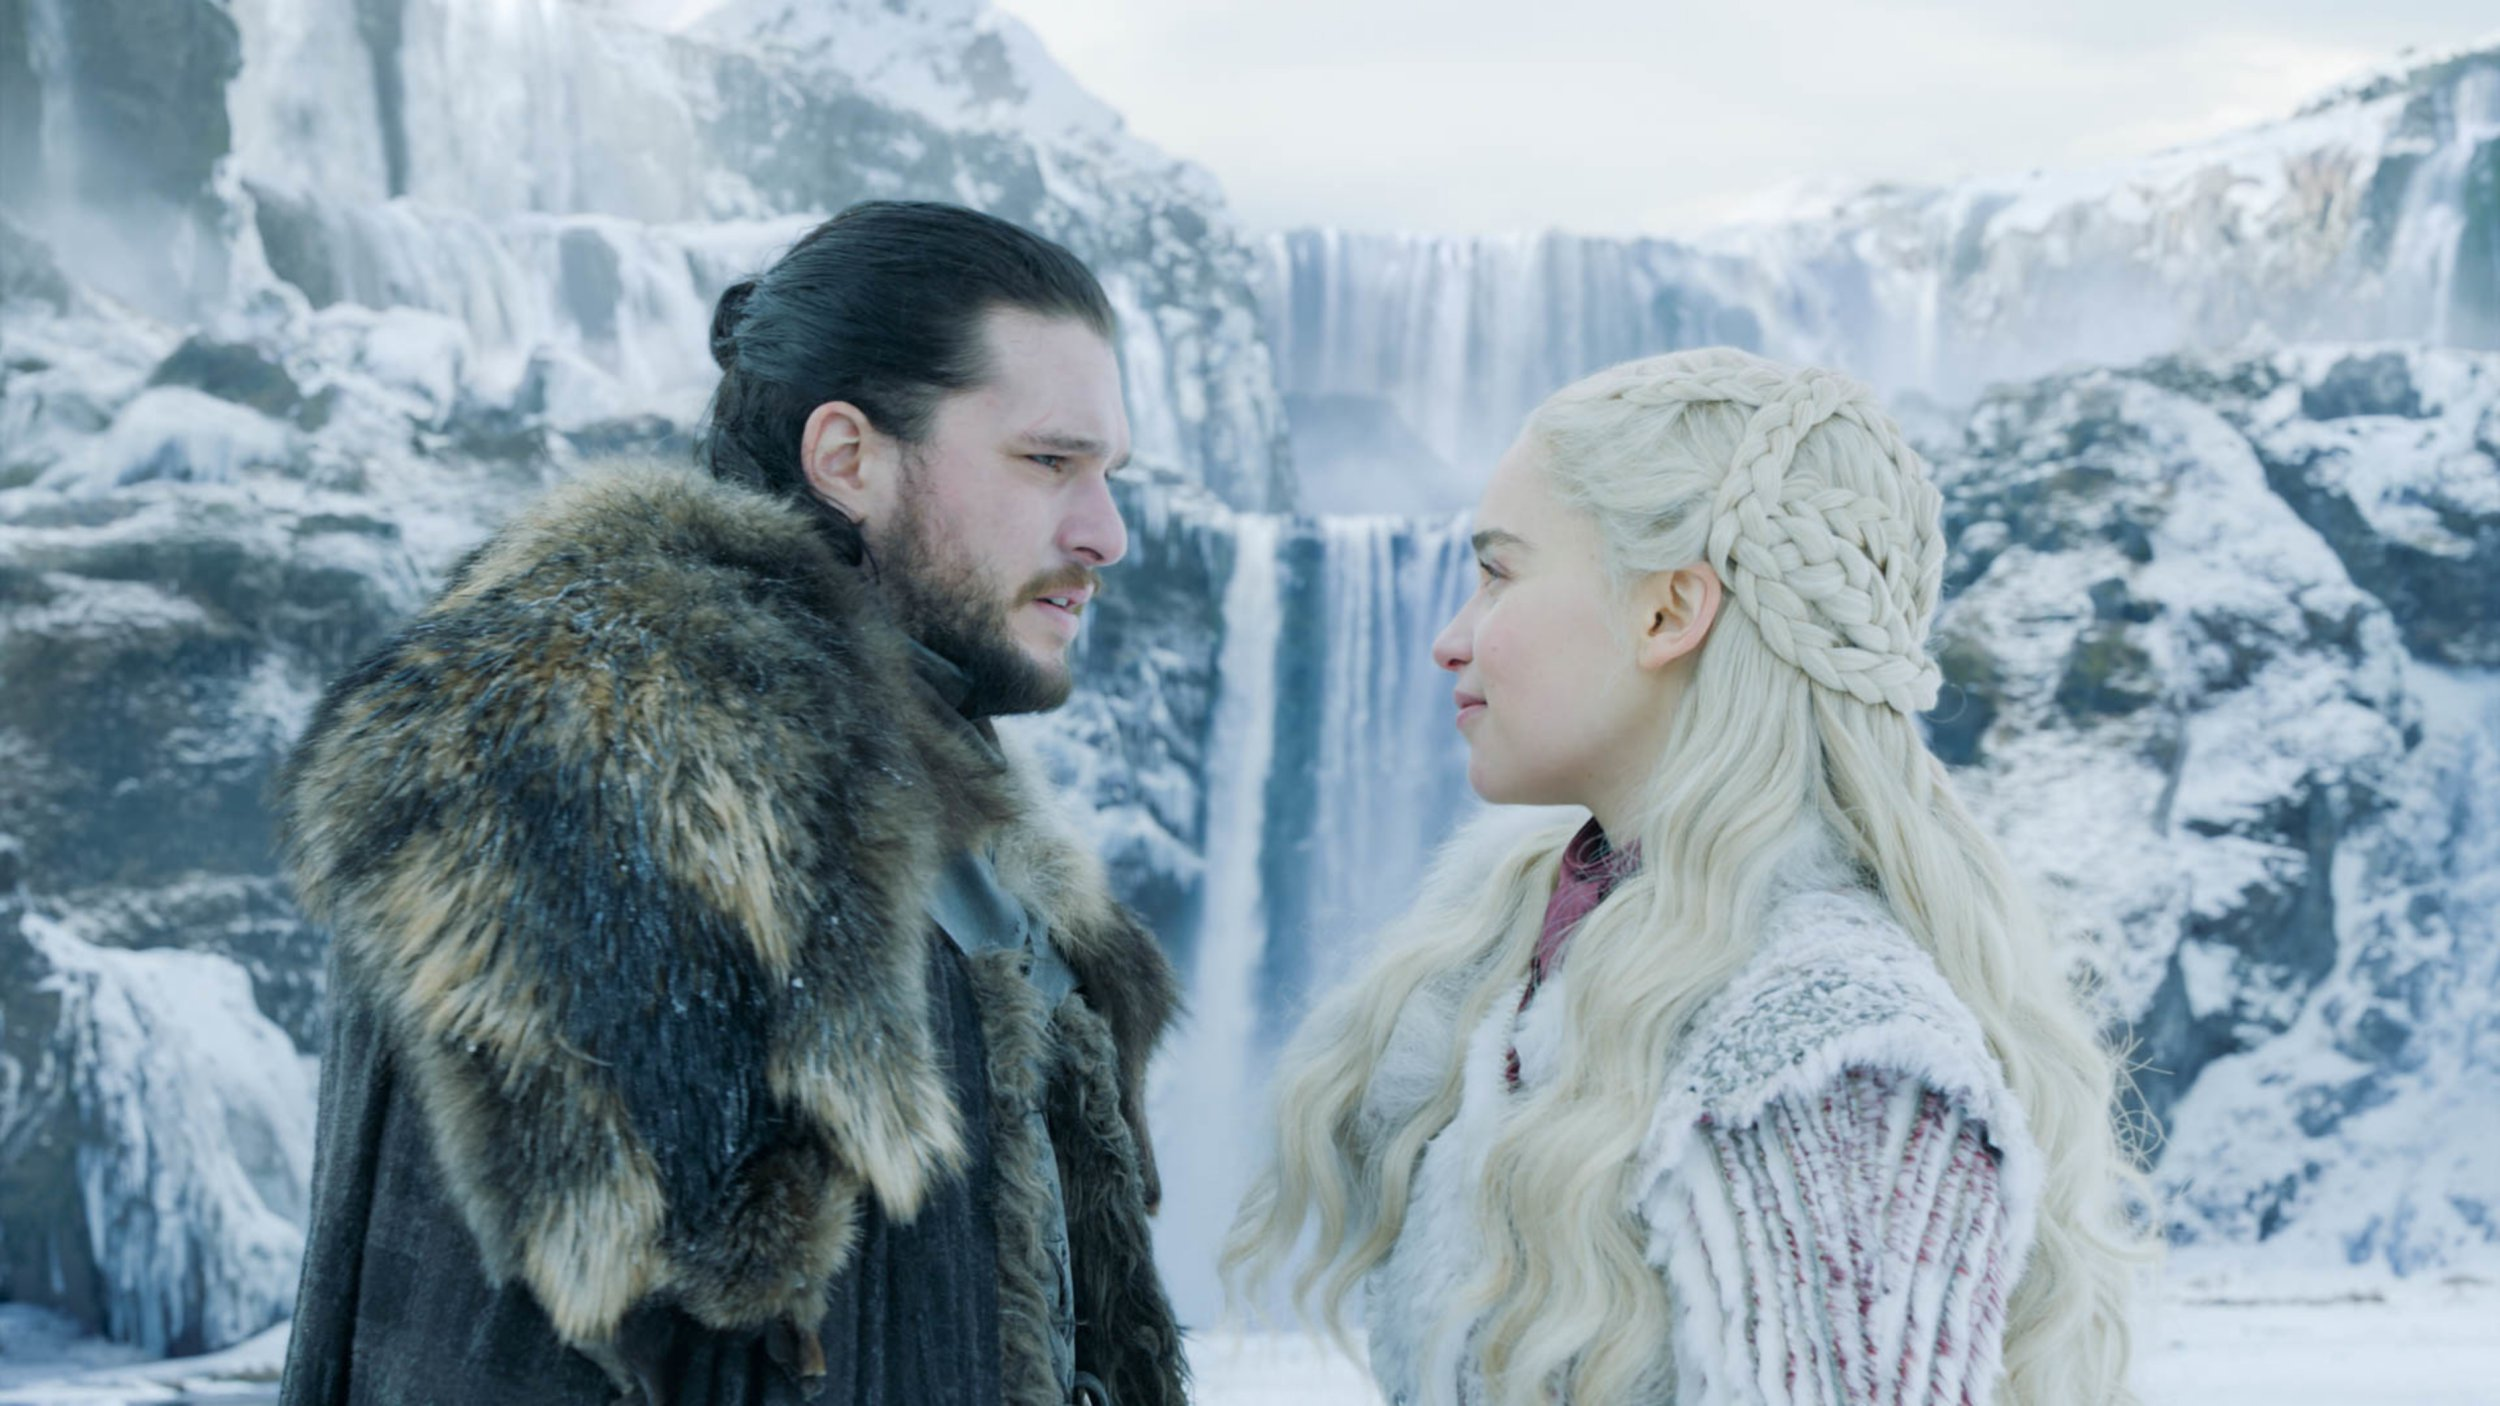 Game Of Thrones season 8 episode 2 spoilers, trailer and how to watch it before Monday night